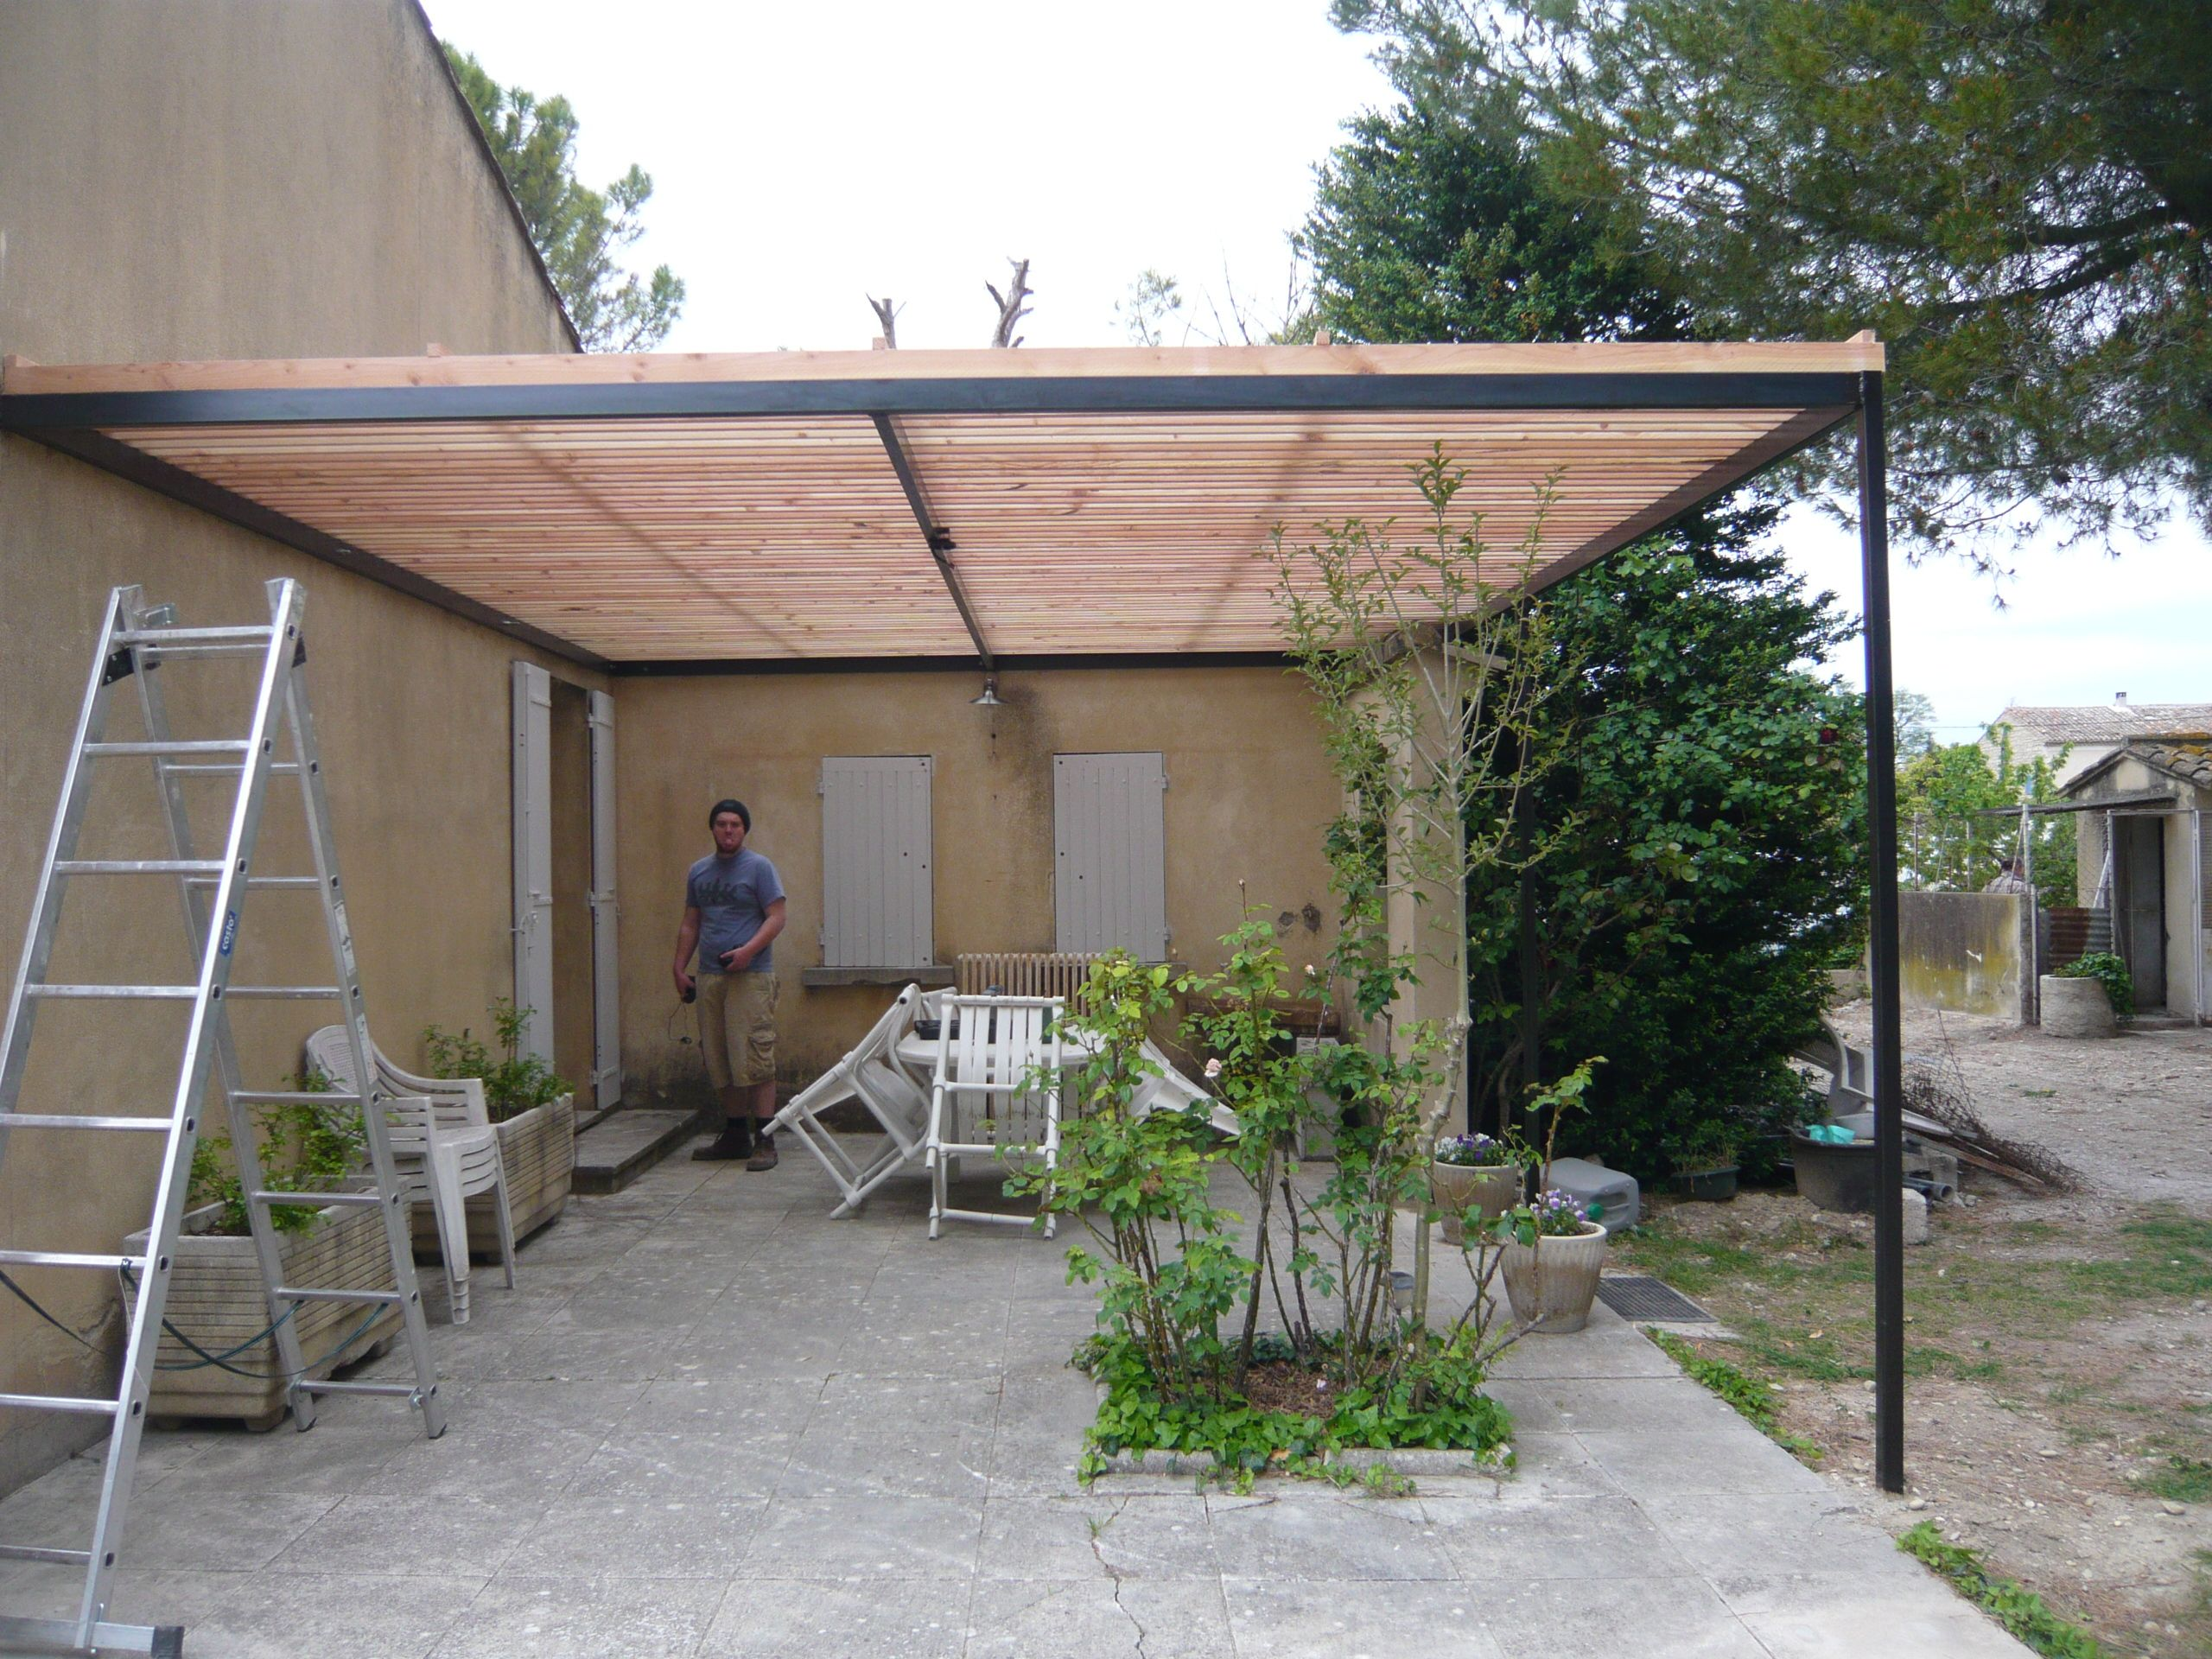 Pergola bois m tal instructions de montage do it yourself - Pergolas de lona para jardin ...